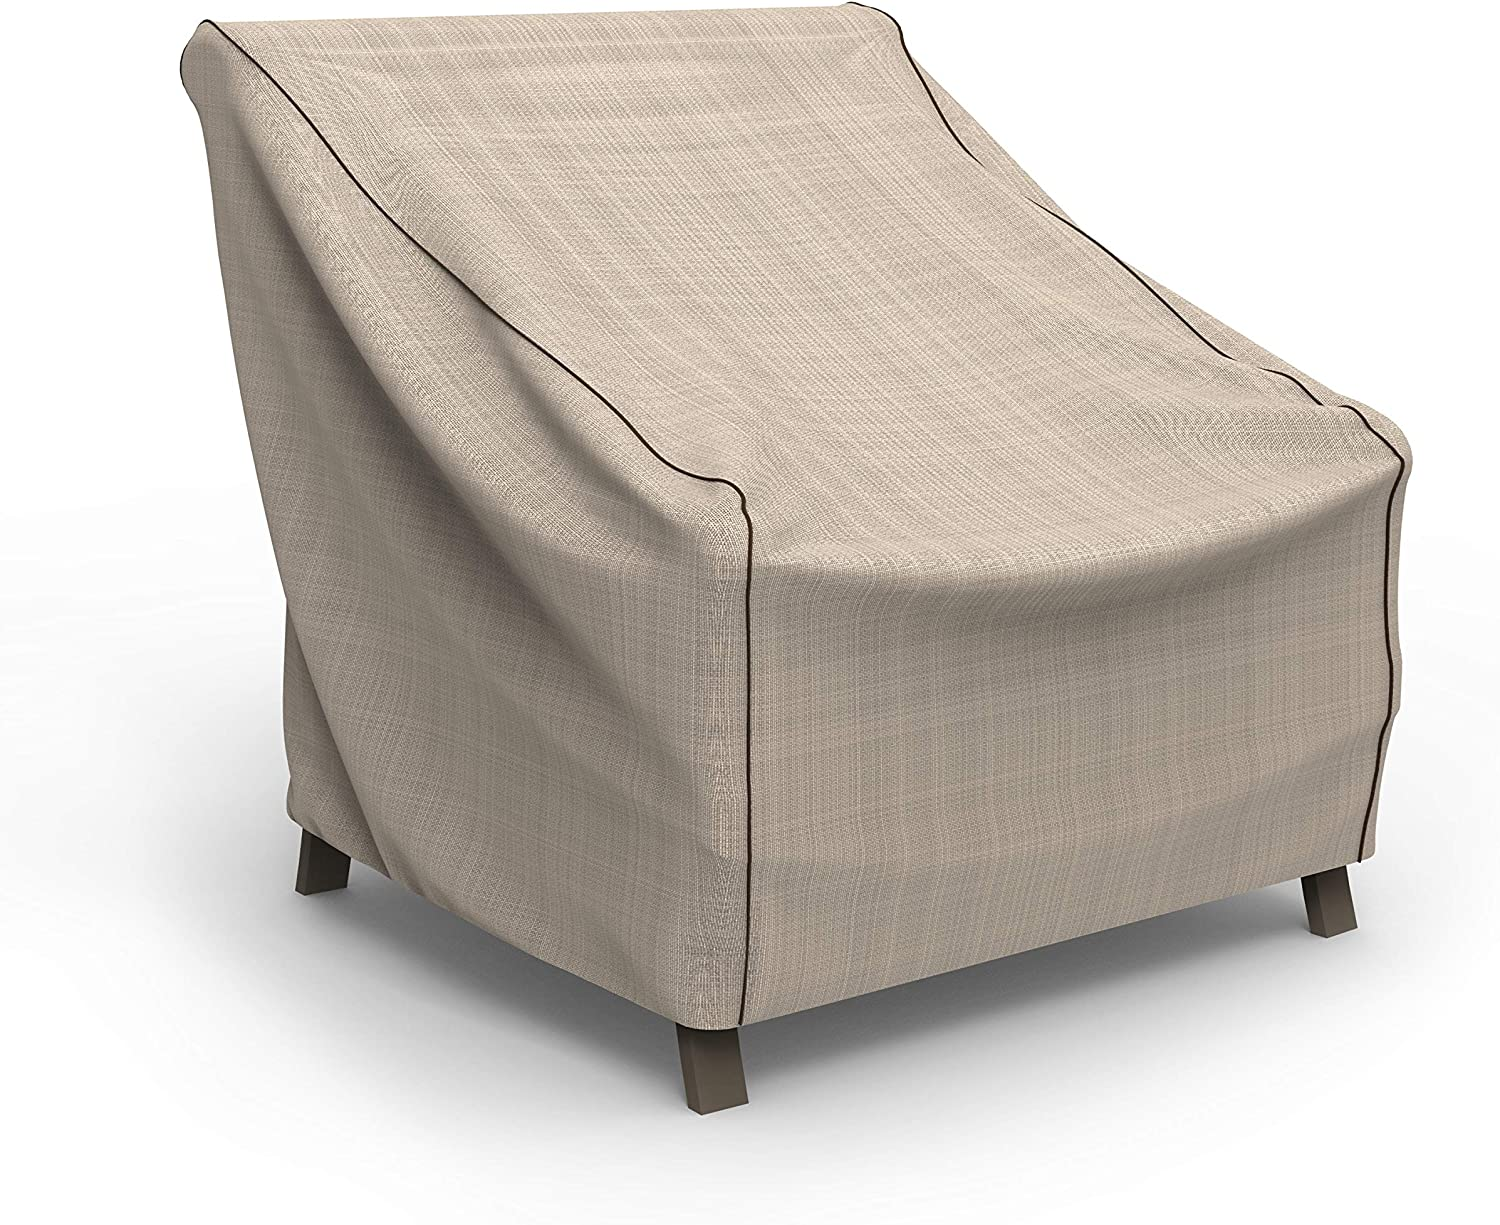 EmpirePatio Tan Tweed Patio Chair Cover, Large